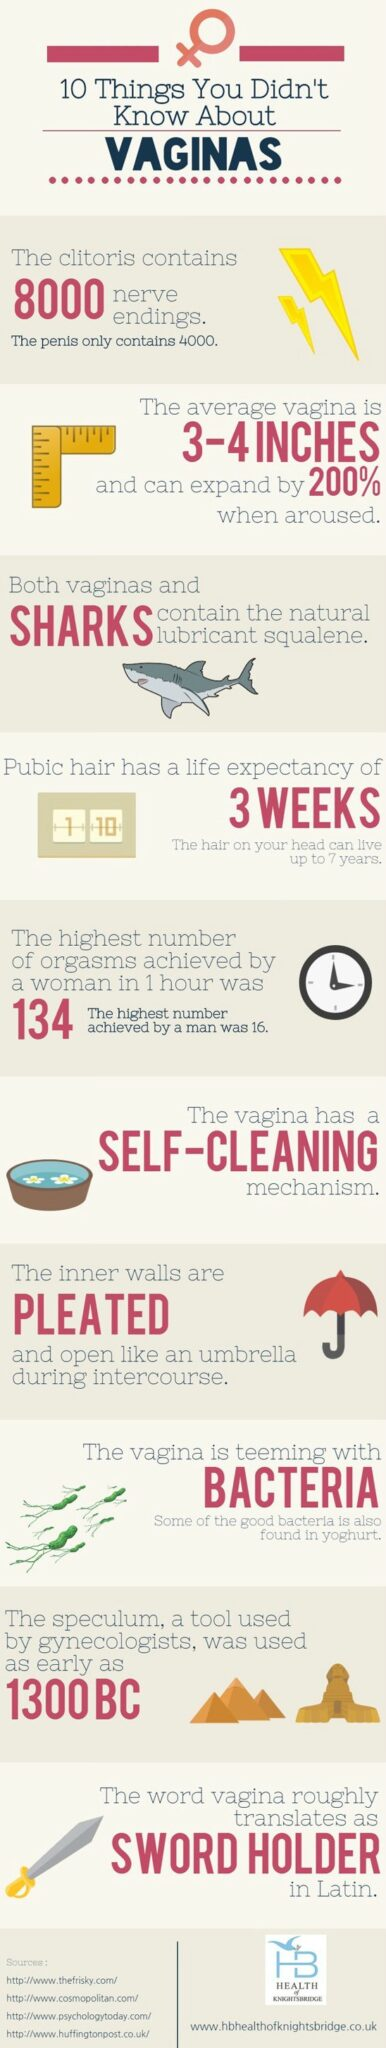 Vagina Infographic ~ https://healthpositiveinfo.com/facts-about-vaginas.html